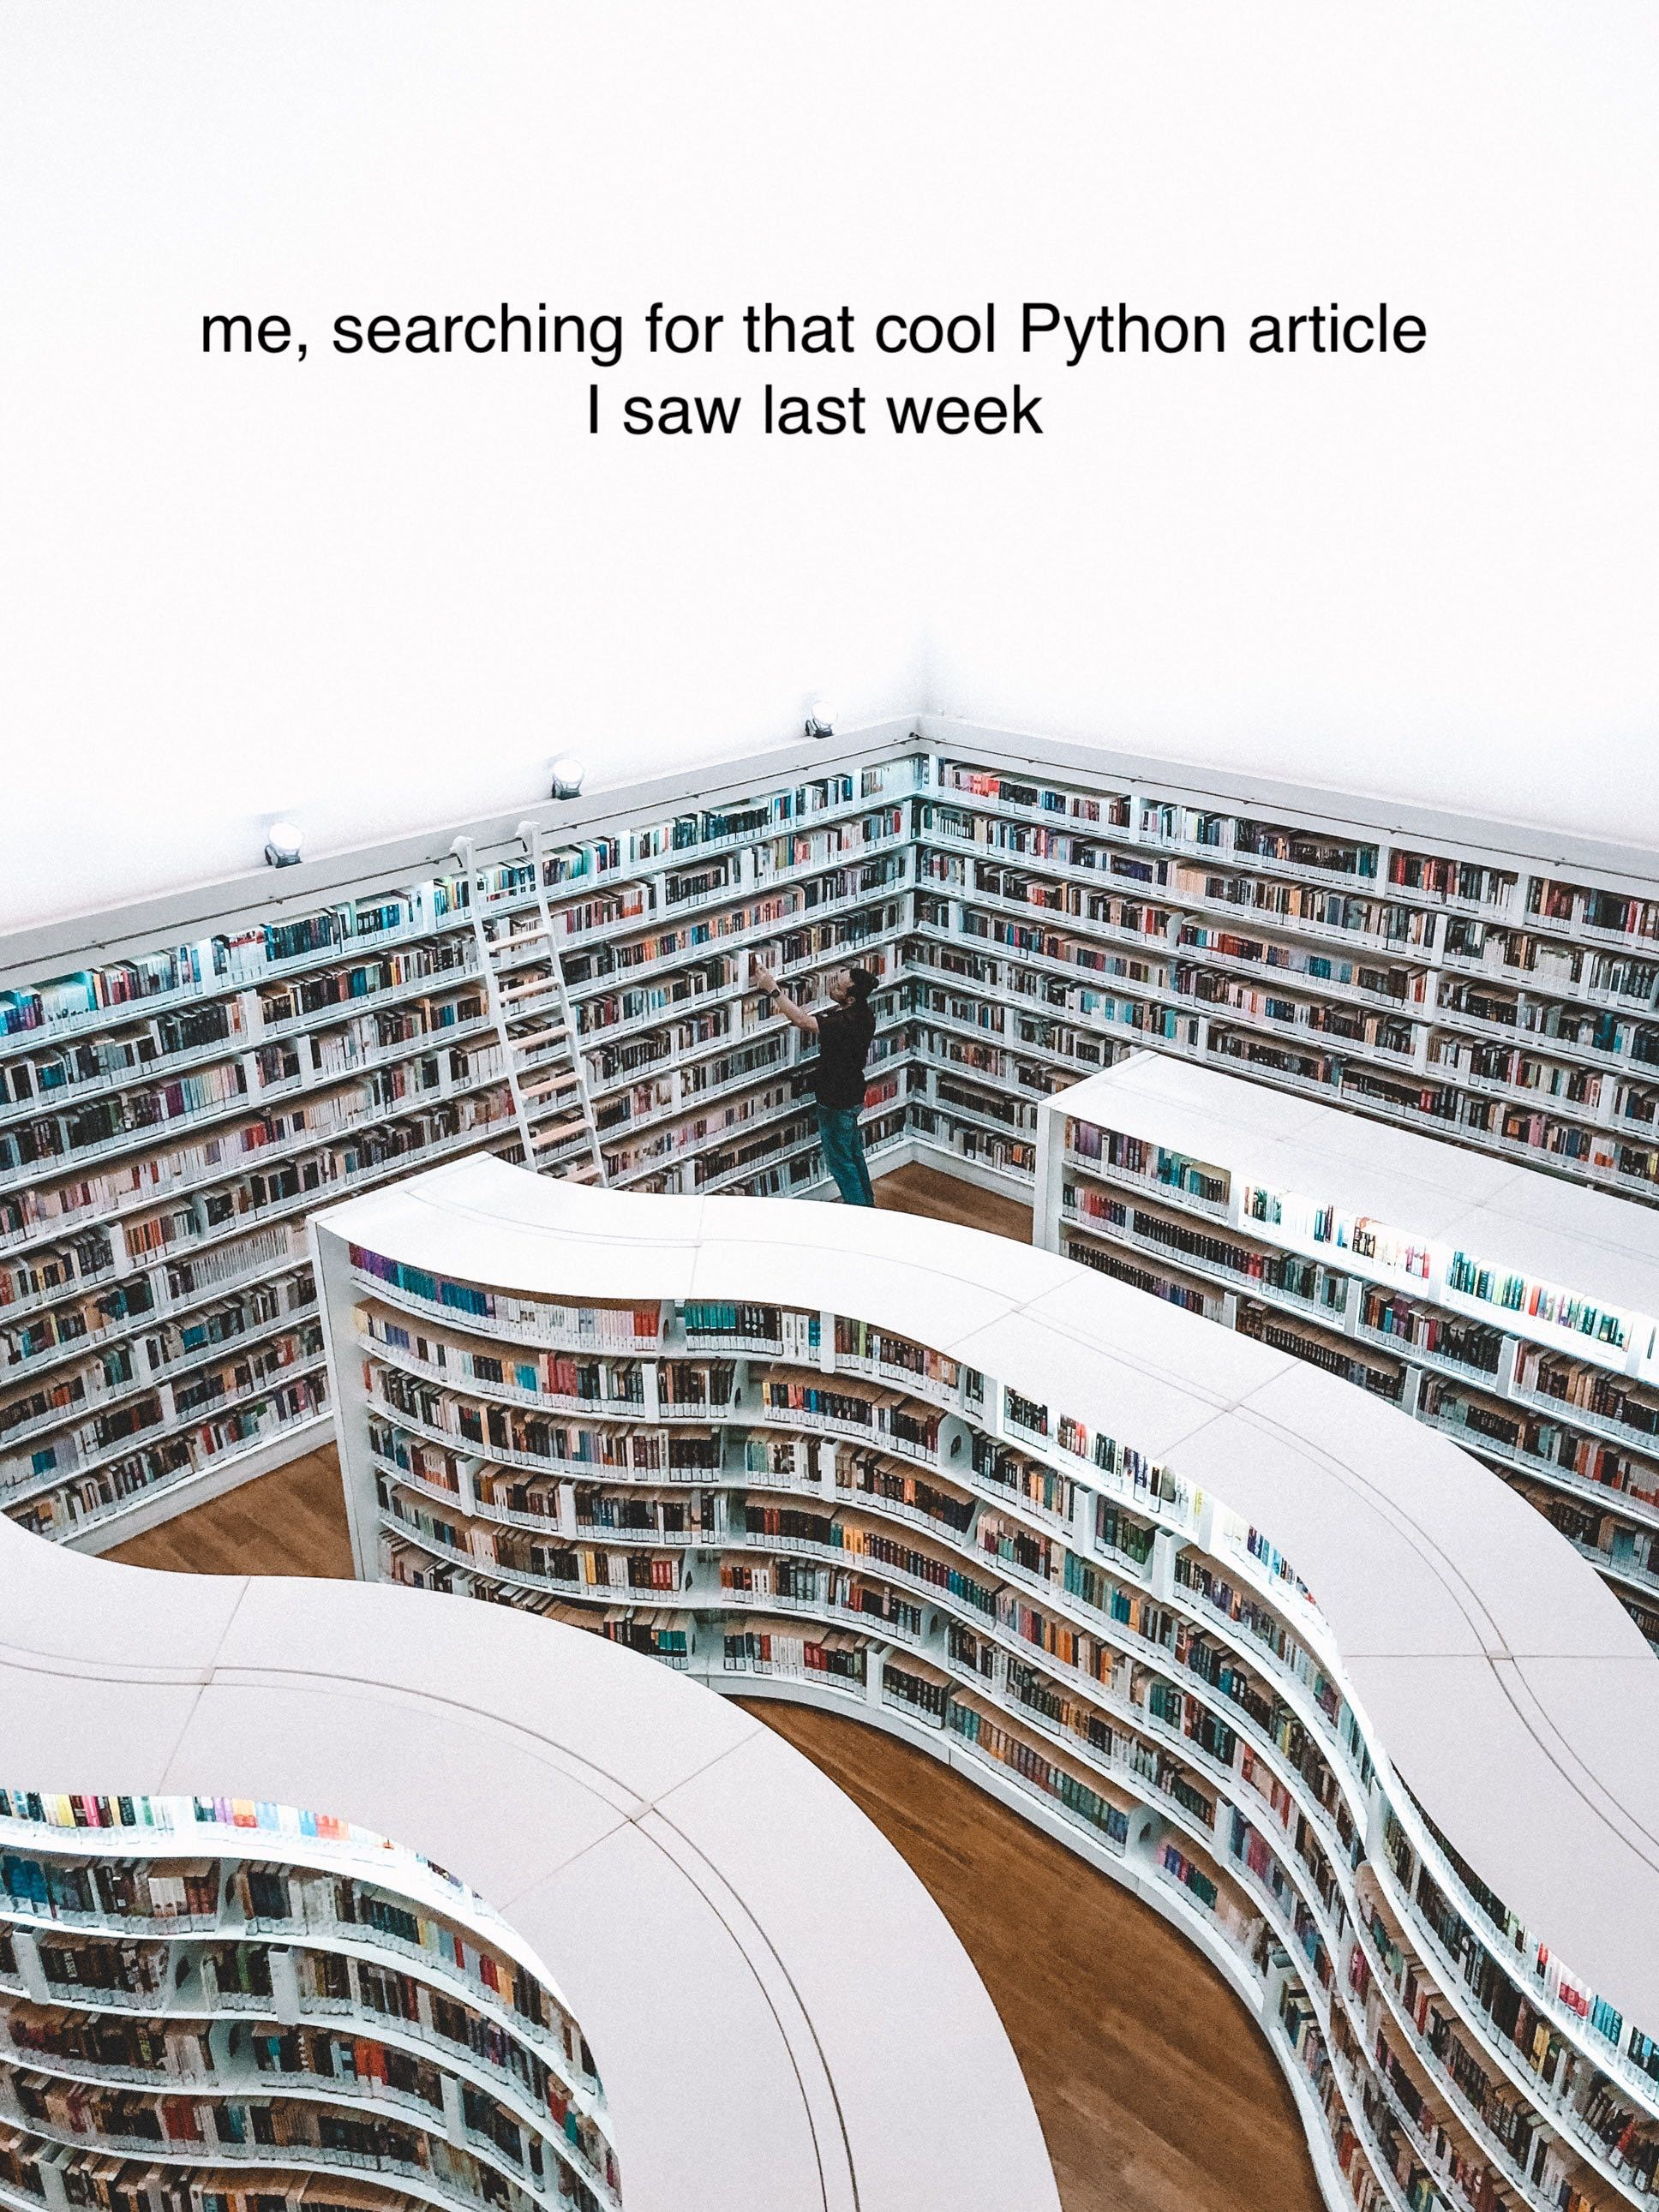 Me, searching for that cool Python article I saw last week